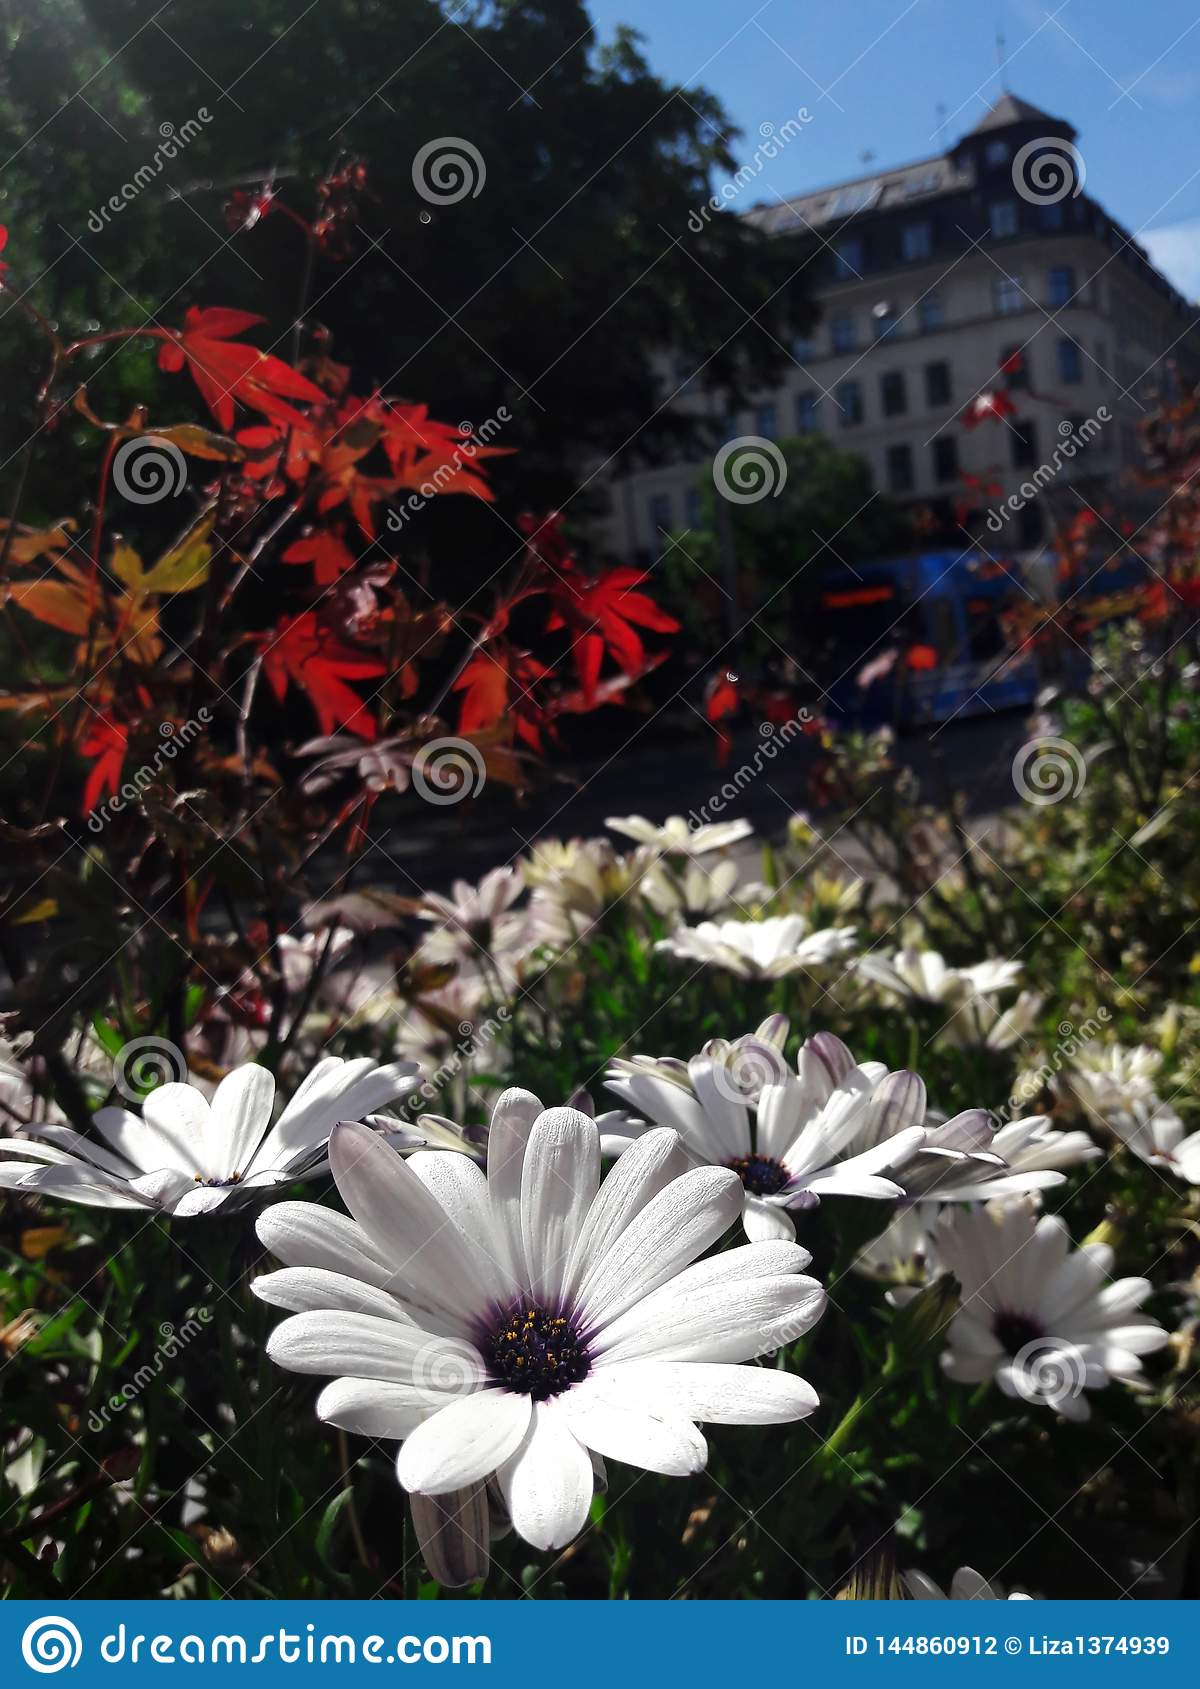 Beautiful flowers against the background of the European city. Stockholm, Sweden